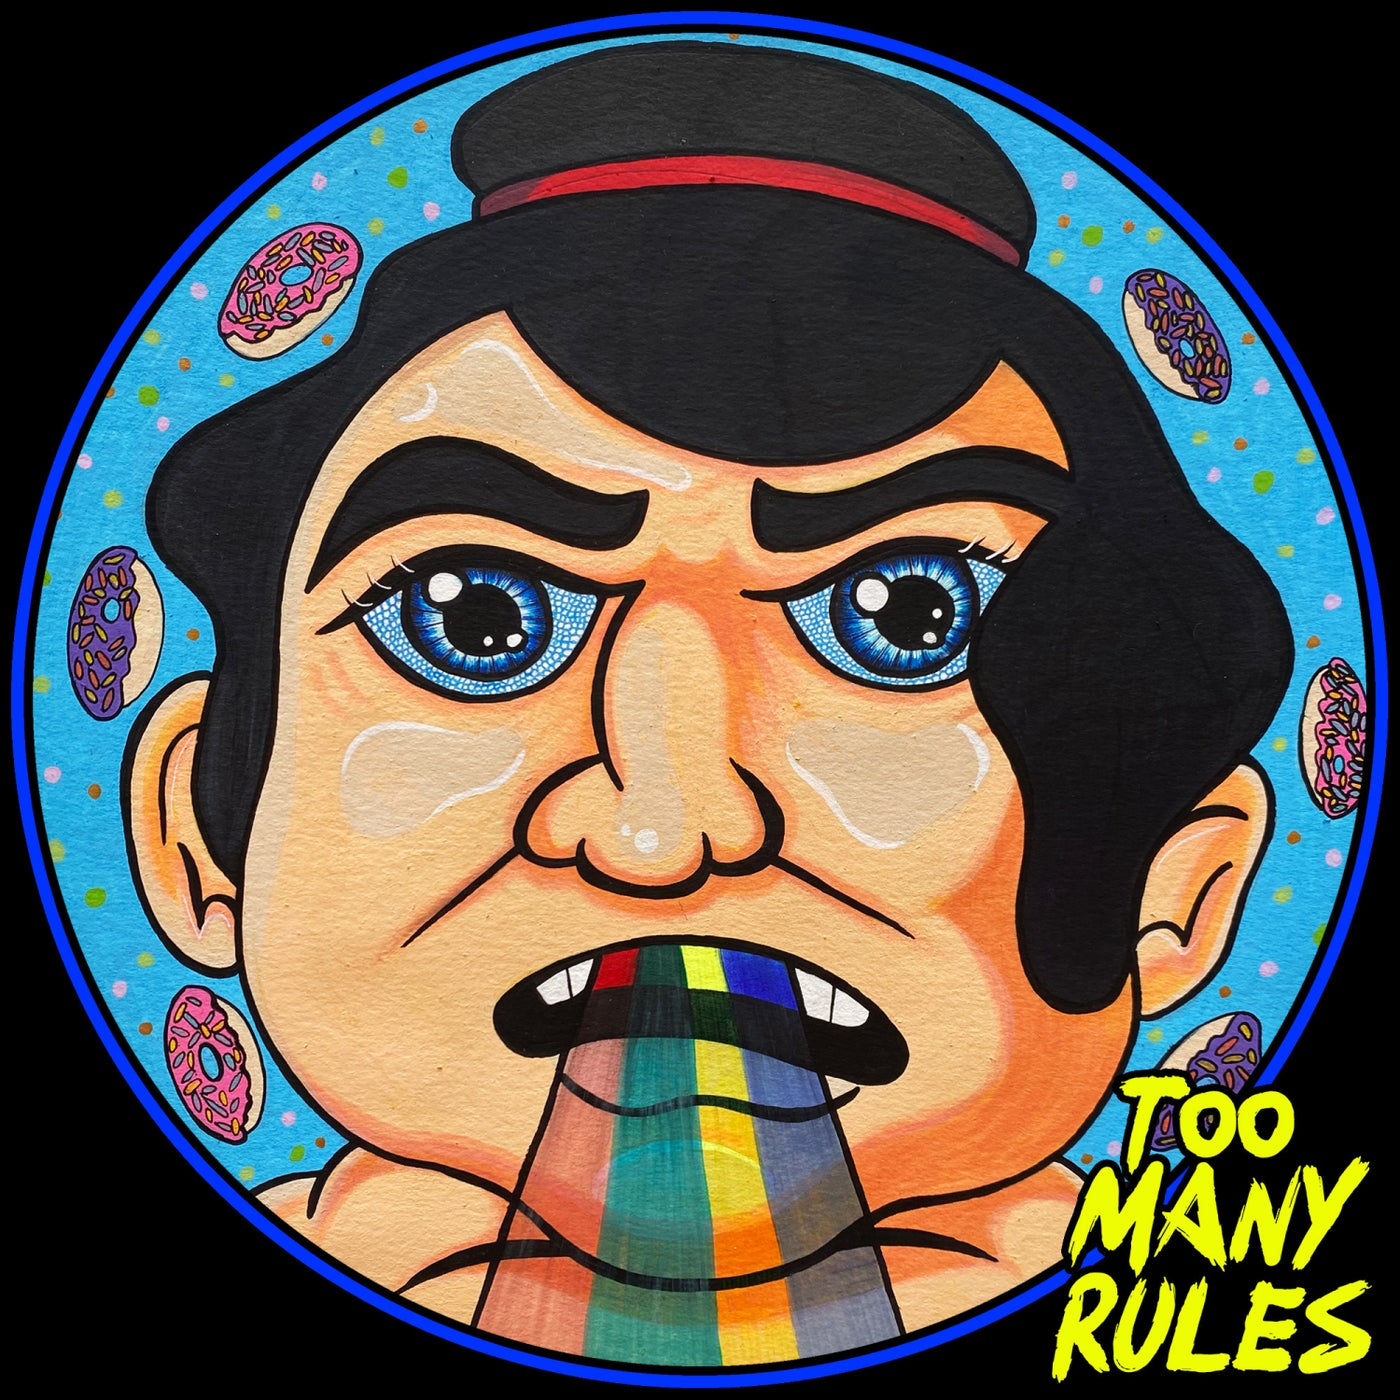 Play By My Rules (Original Mix)